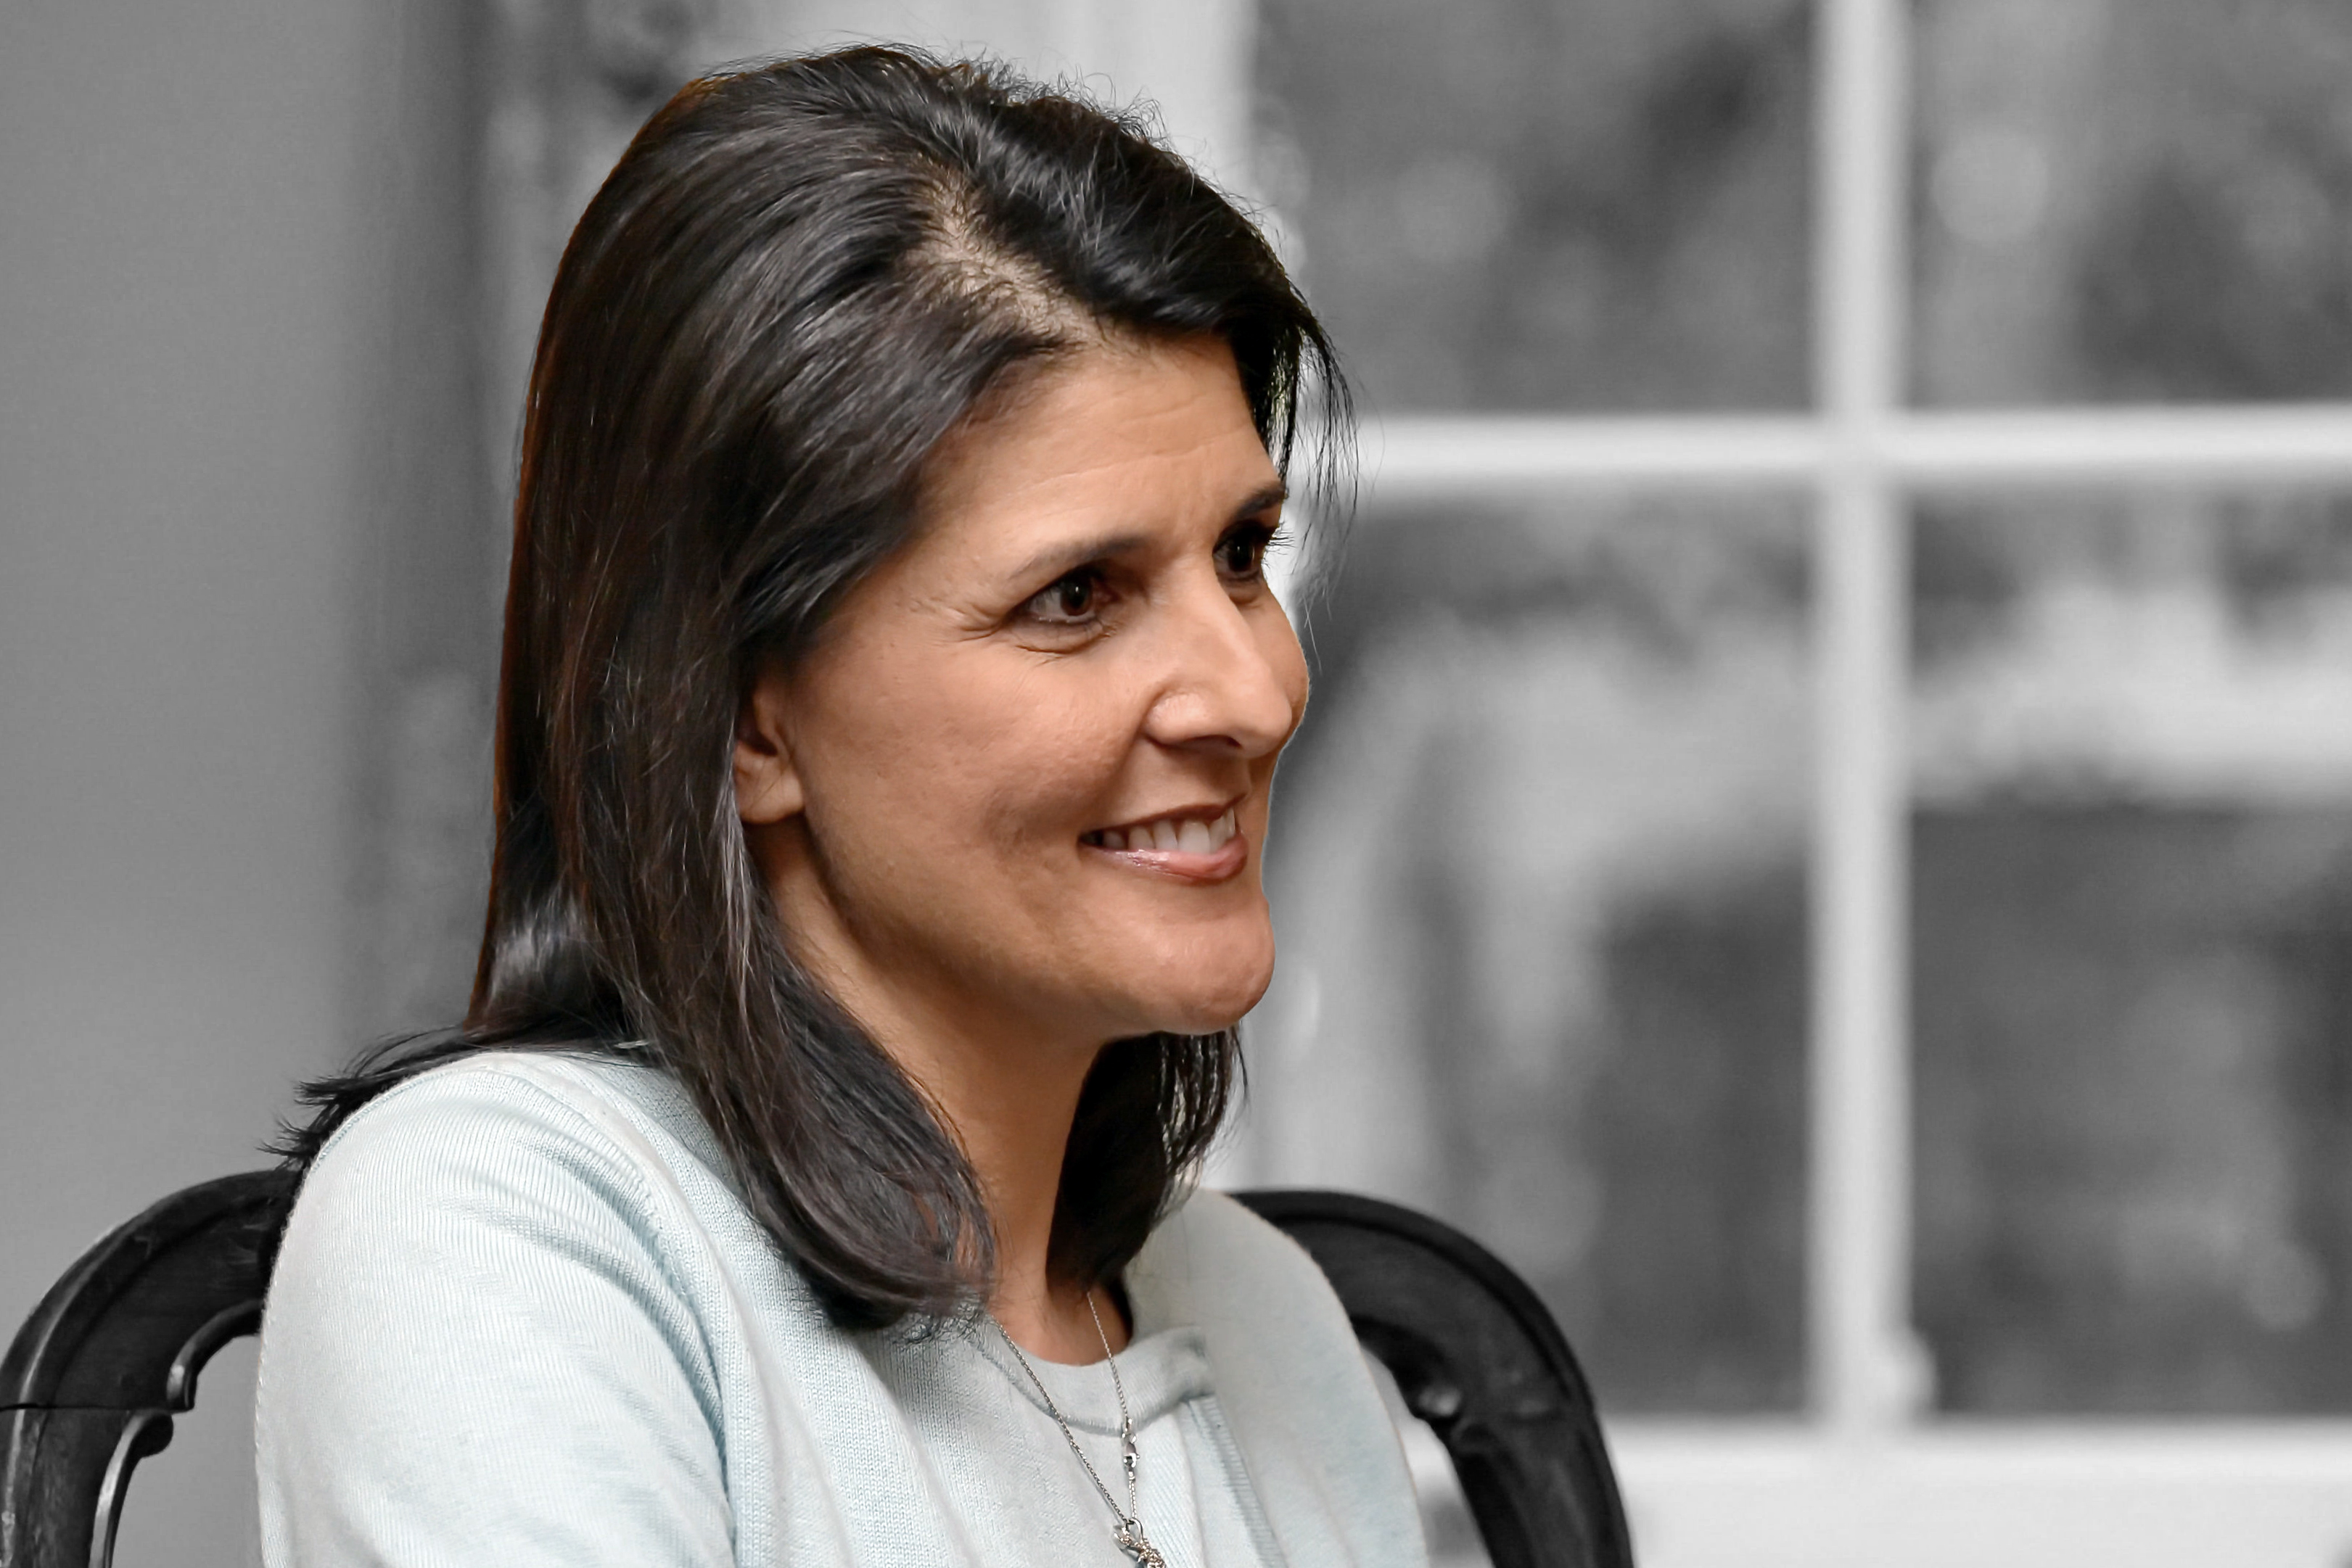 Nikki Haley:                                The South Carolina Governor, a Republican, drew praise for her handling of the Charleston church shooting and the lowering of the Confederate flag. She'll be in the spotlight again next year as the first Southern presidential primary takes place in her backyard.